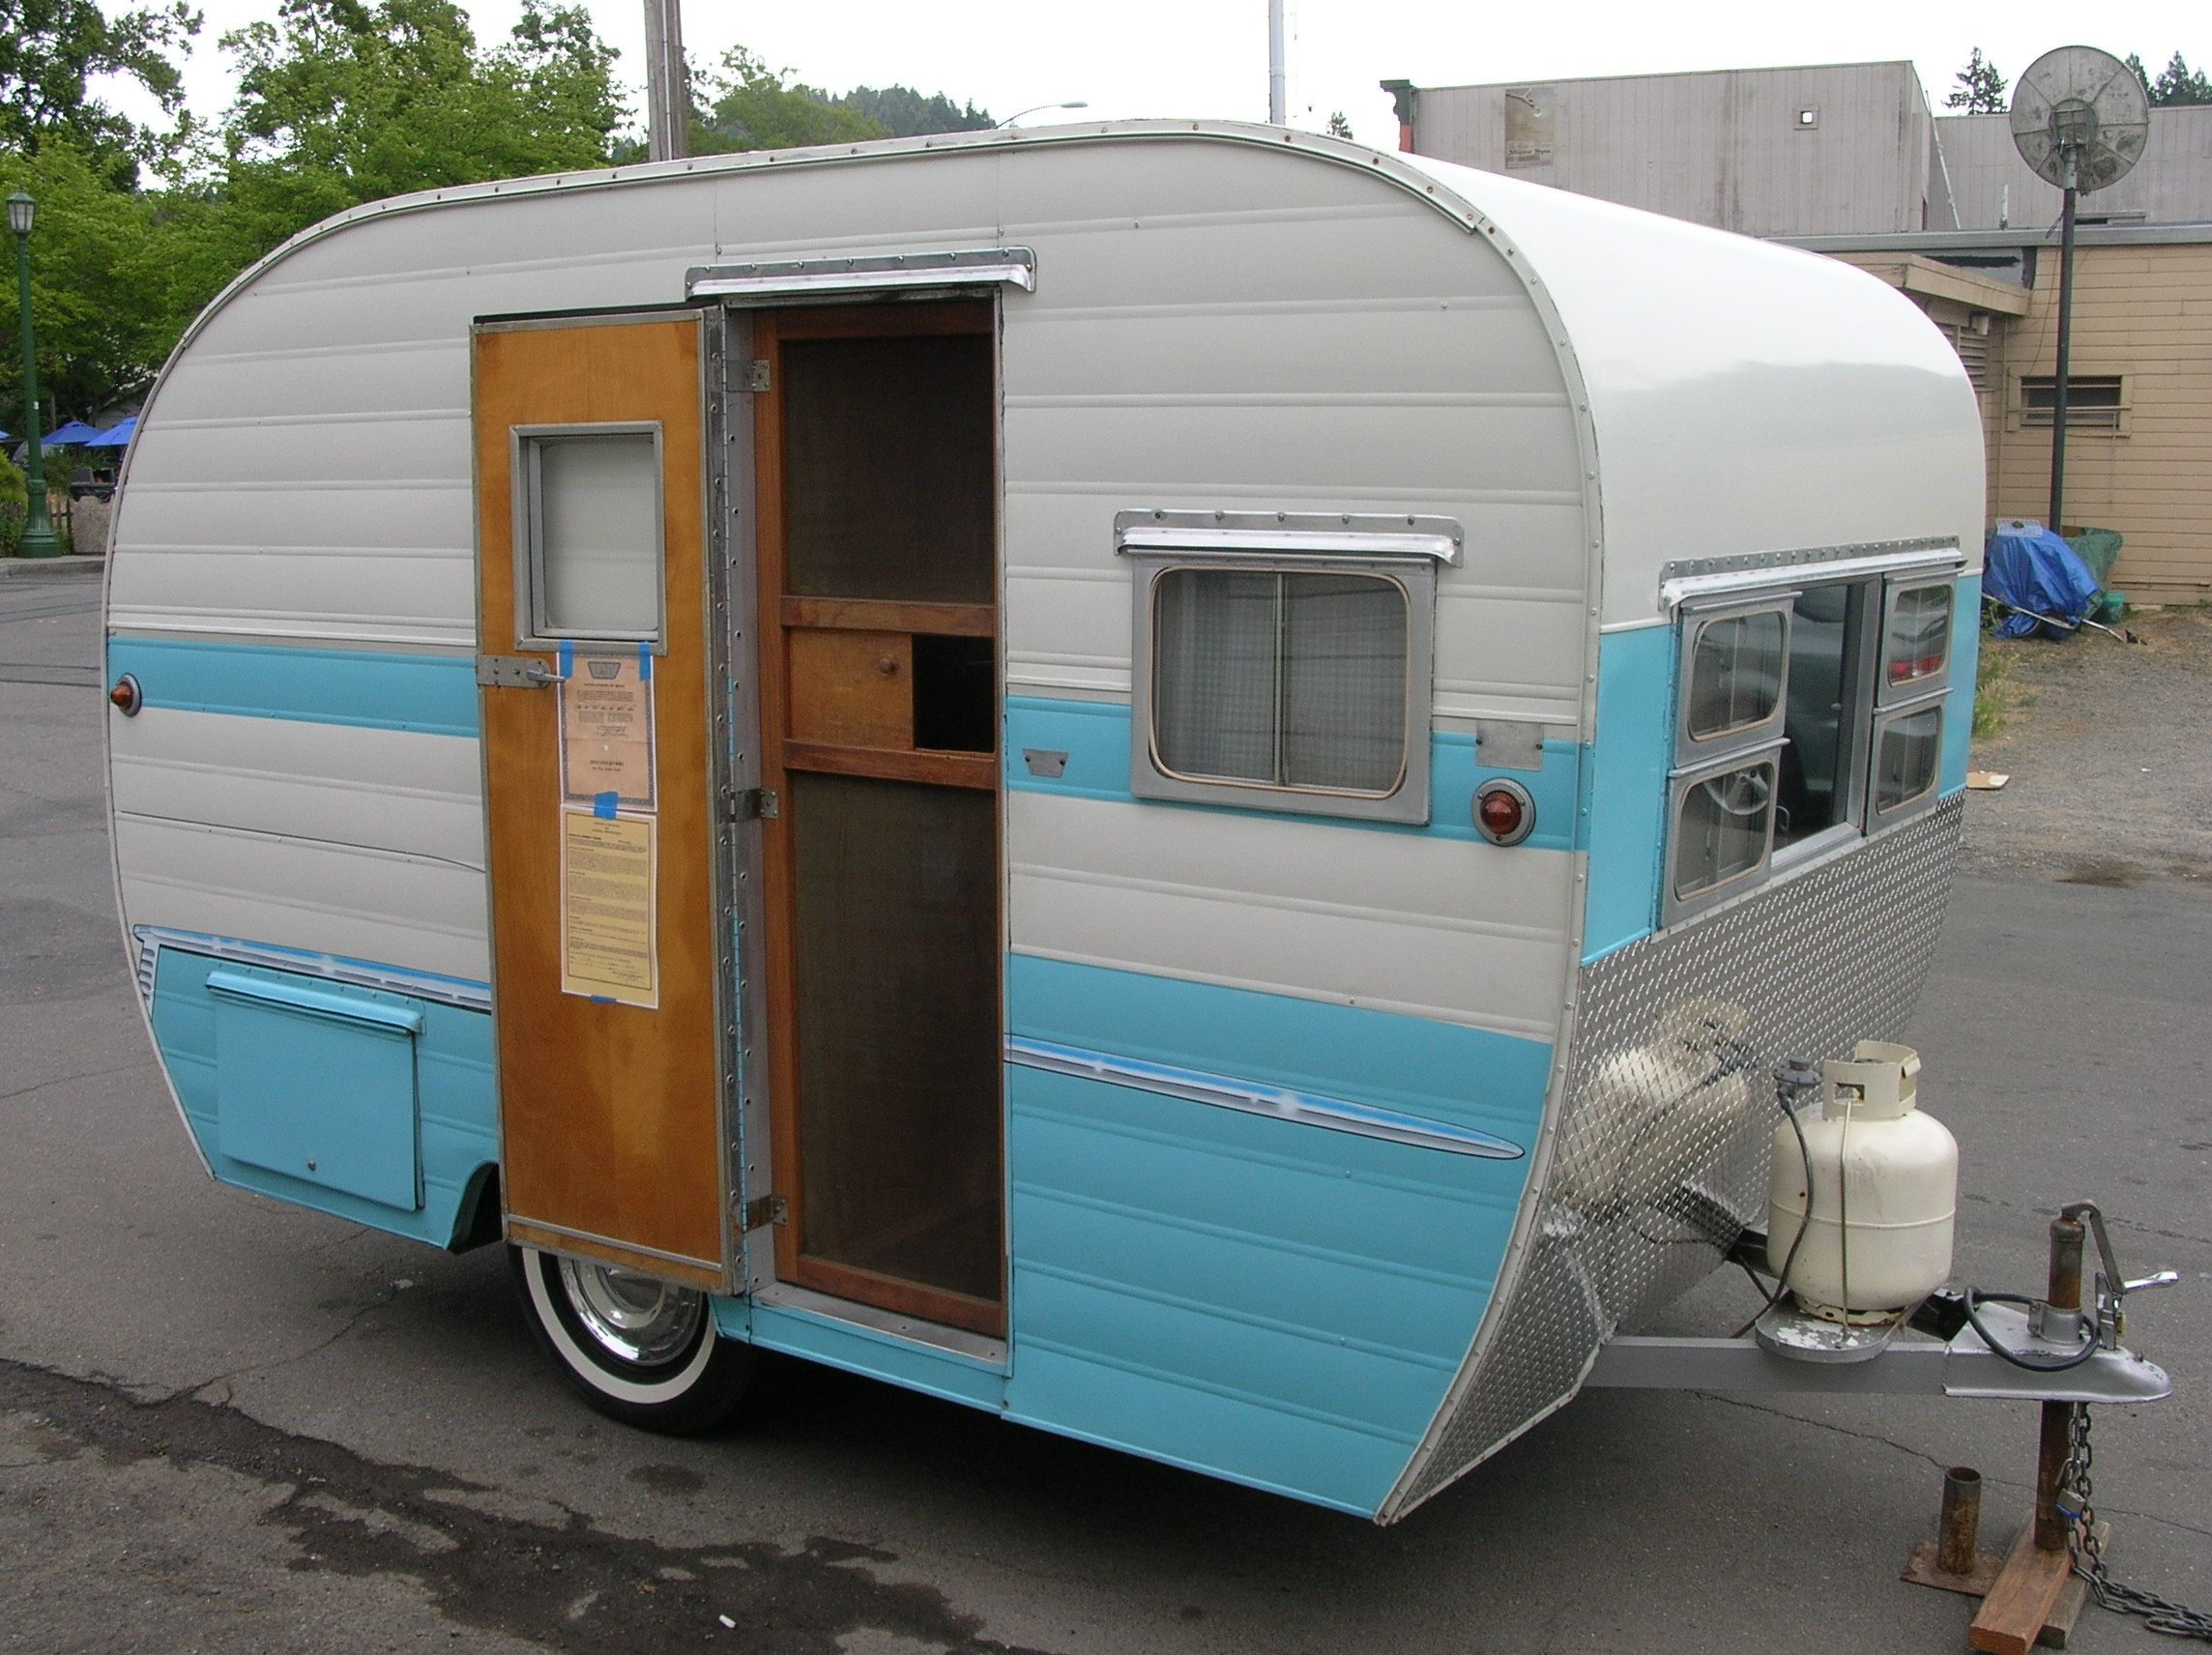 Vintage Travel Trailers For Sale | ... trailer was created by russian river  vintage travel trailers credit